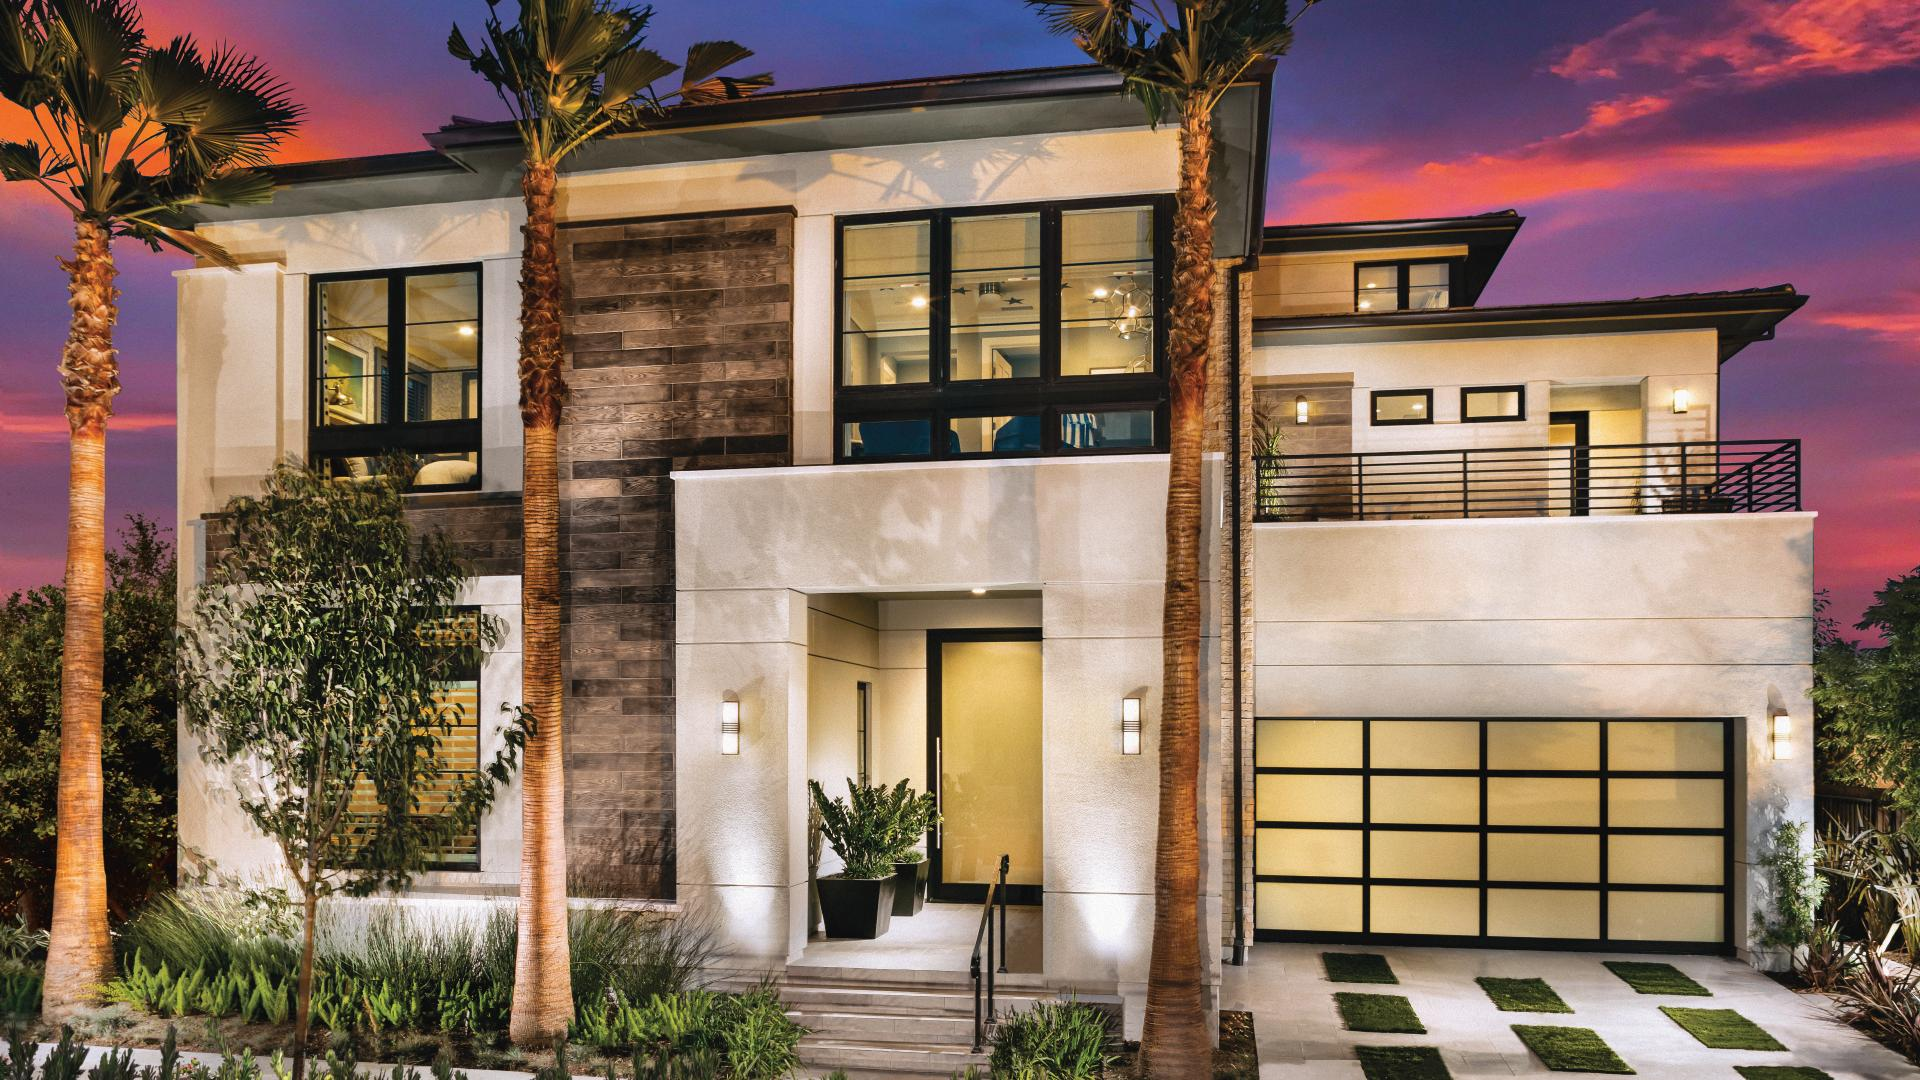 Home designs with modern exterior options